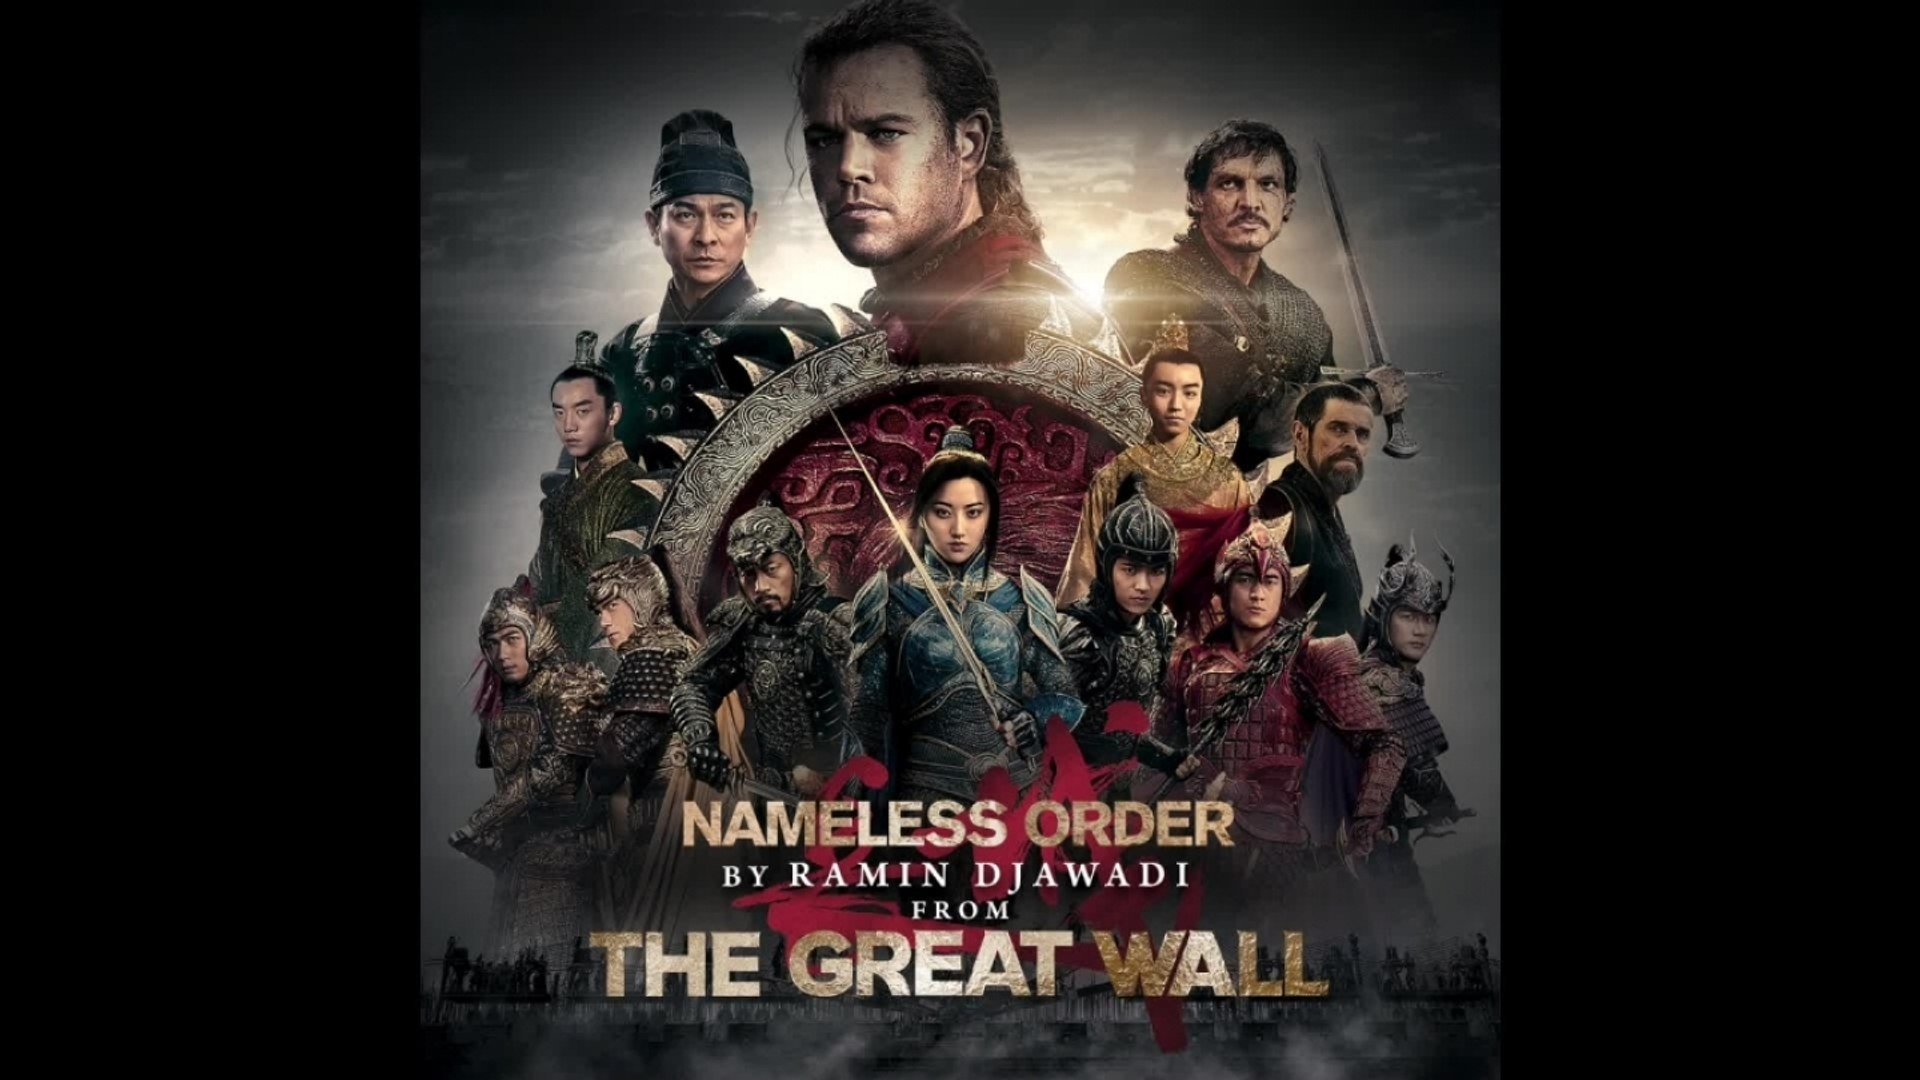 Ramin Djawadi Nameless Order The Great Wall Original Motion